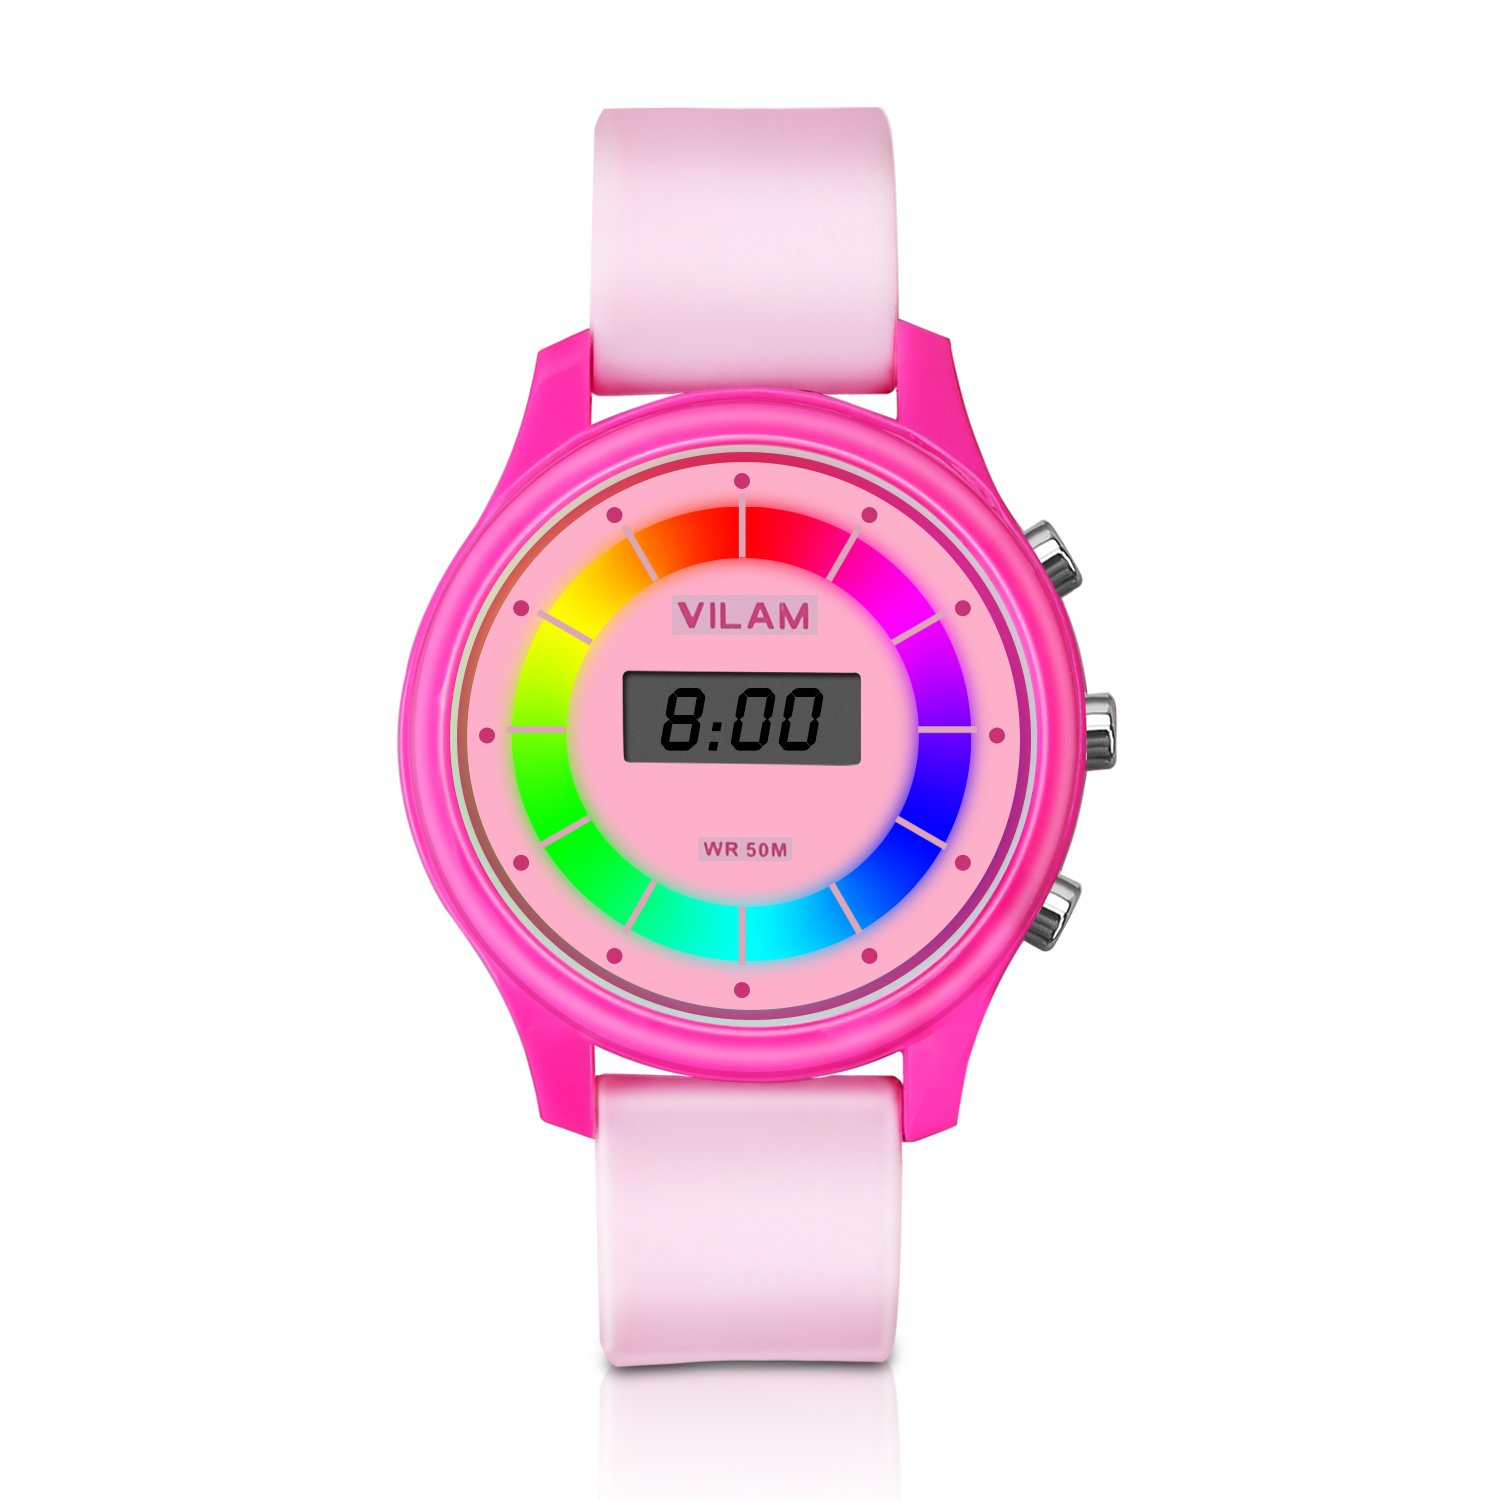 Rainbow Coloured Lights Kids Watch - 7 Colors Flashing 50M Waterproof Children Electronic Watch, Washable Comfortable Watchband Digital Child Wrist Watch for Boys and Girls as Christmas Gift (Pink) by PERSUPER